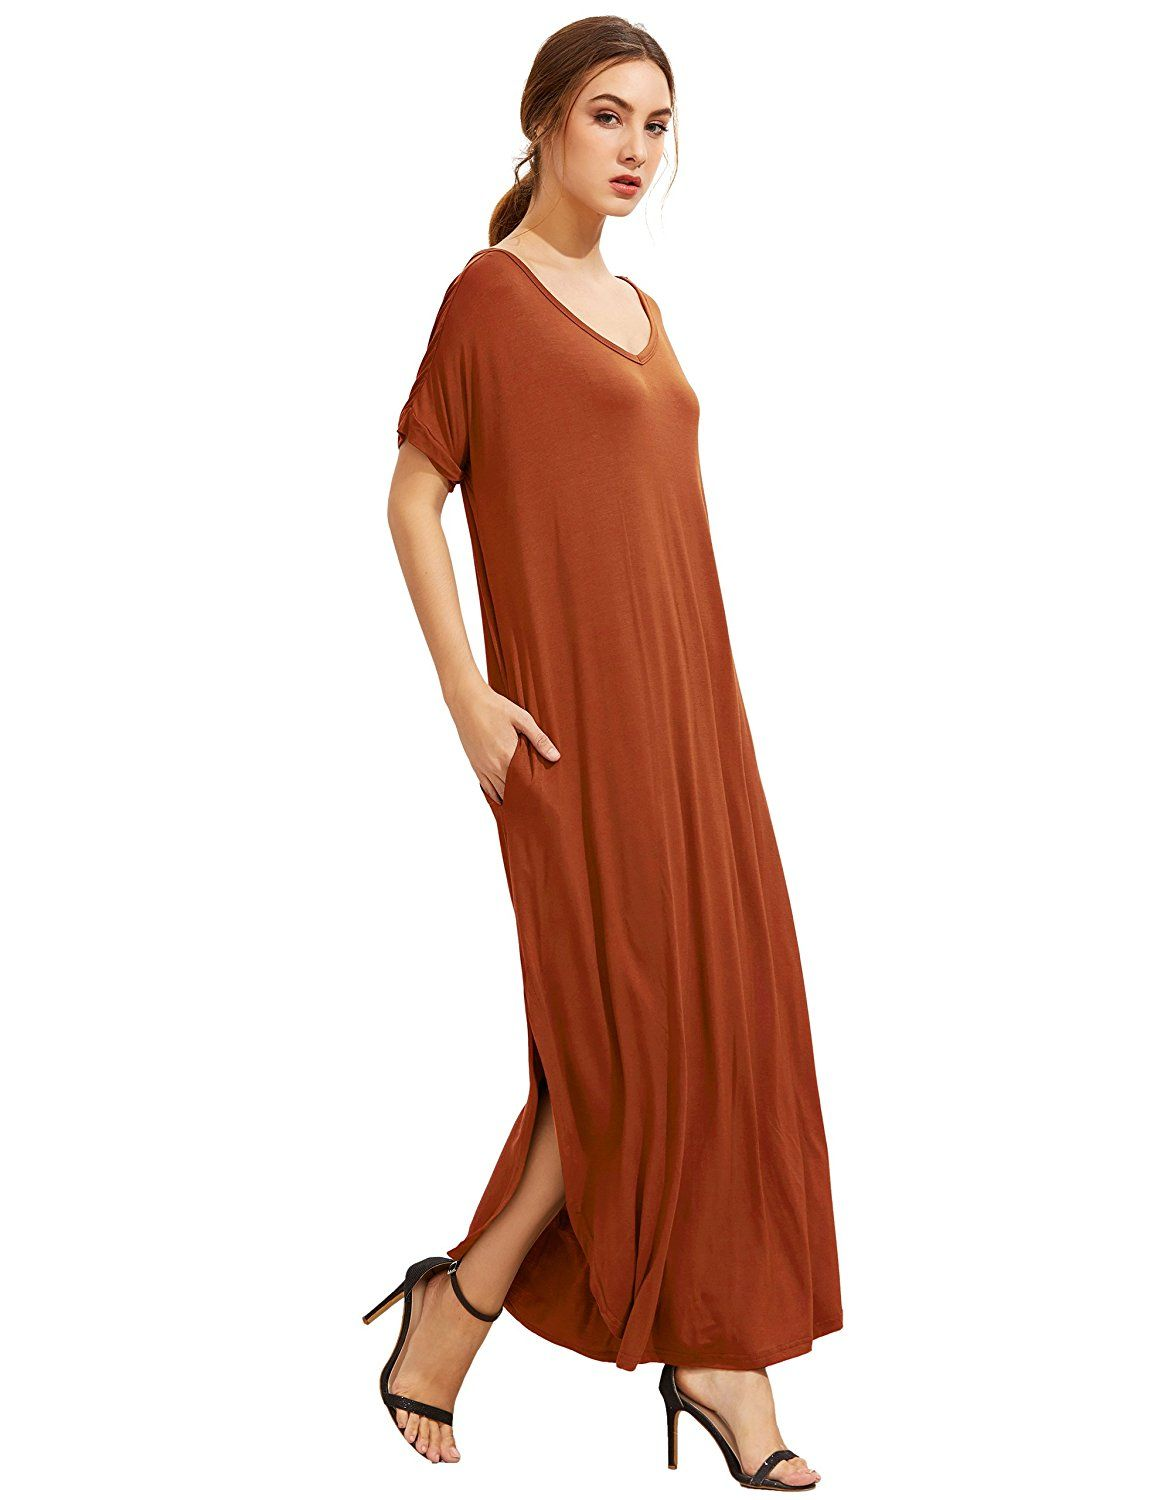 9829cfd7527 MakeMeChic Women s Casual Loose Pocket Long Dress Short Sleeve Split Maxi  Dress at Amazon Women s Clothing